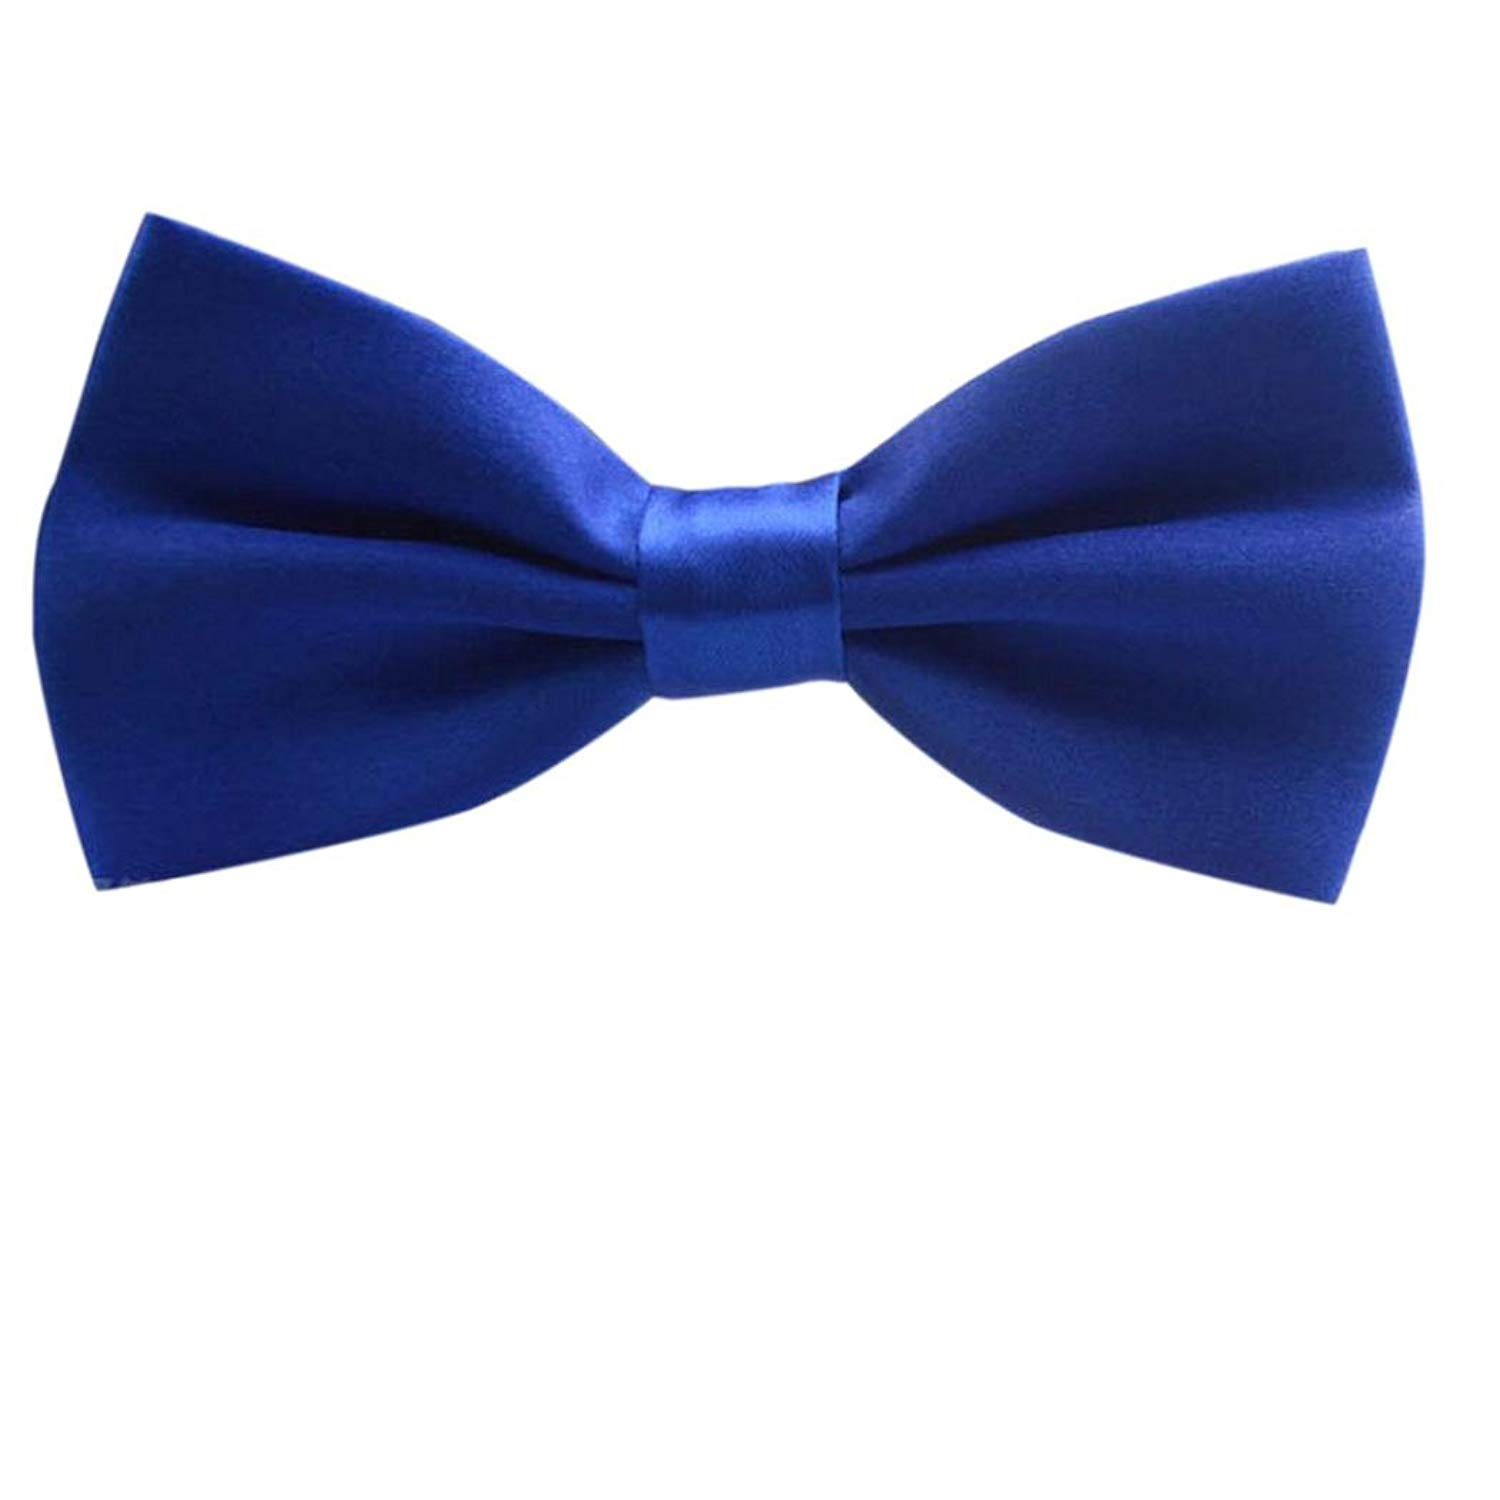 3d2fd7ae0908 Get Quotations · Birdfly Classical Colorful gentleman for Tuxedo Wedding  Hand Made Bow Tie Necktie for Mens (Navy